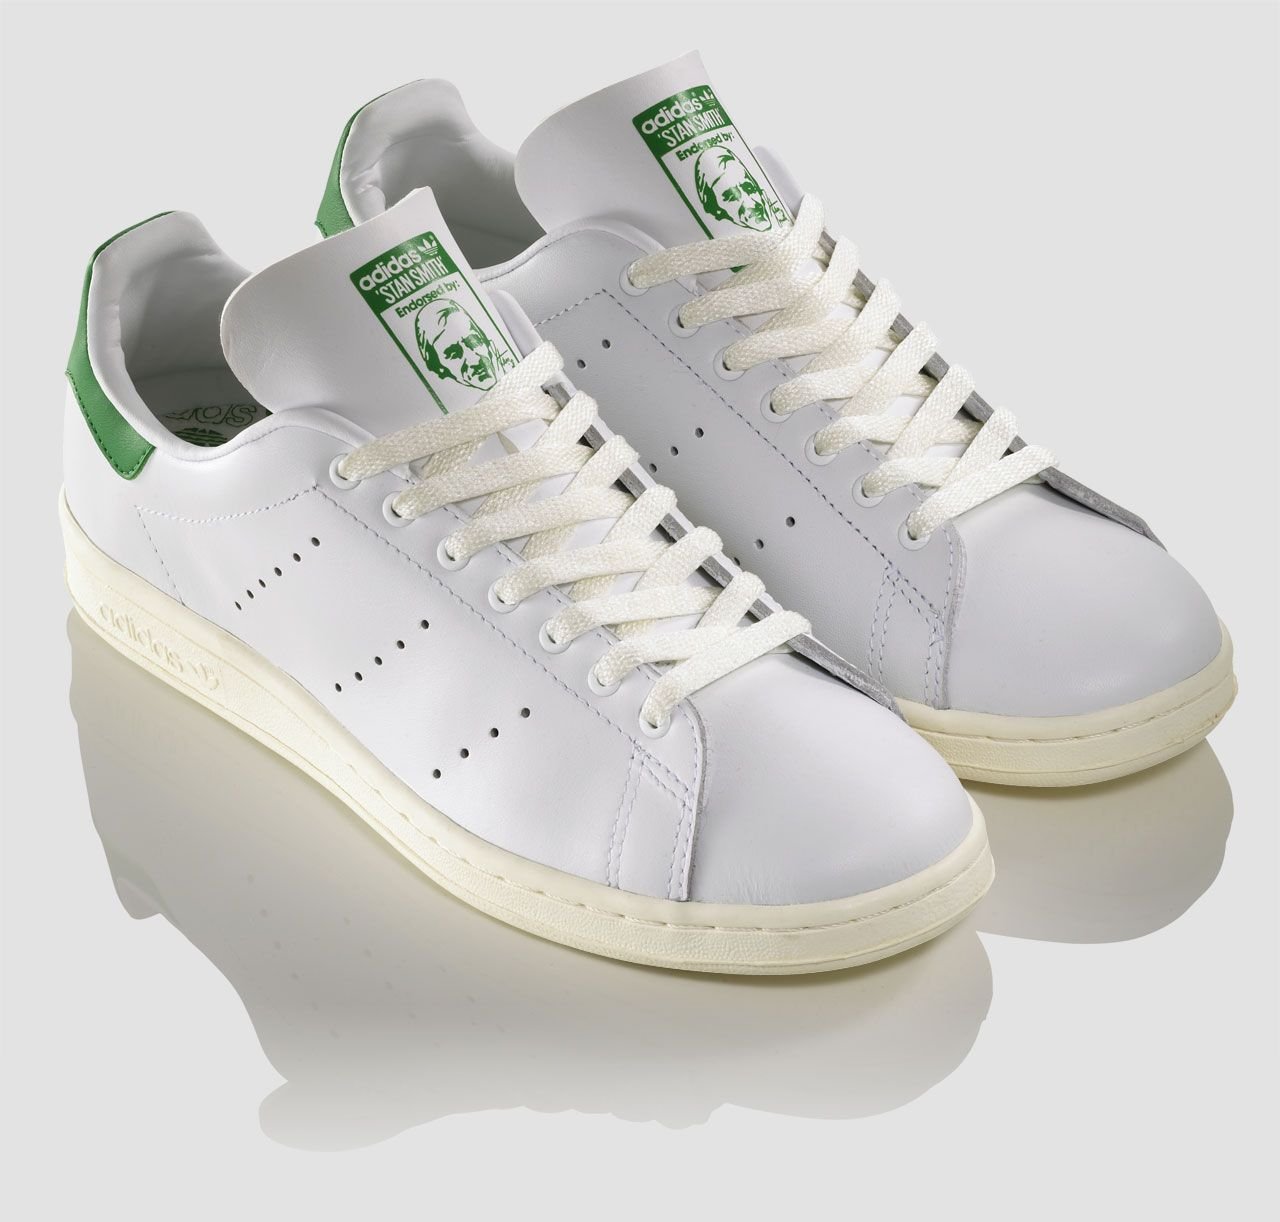 Adidas Stan Smith 80s Leather